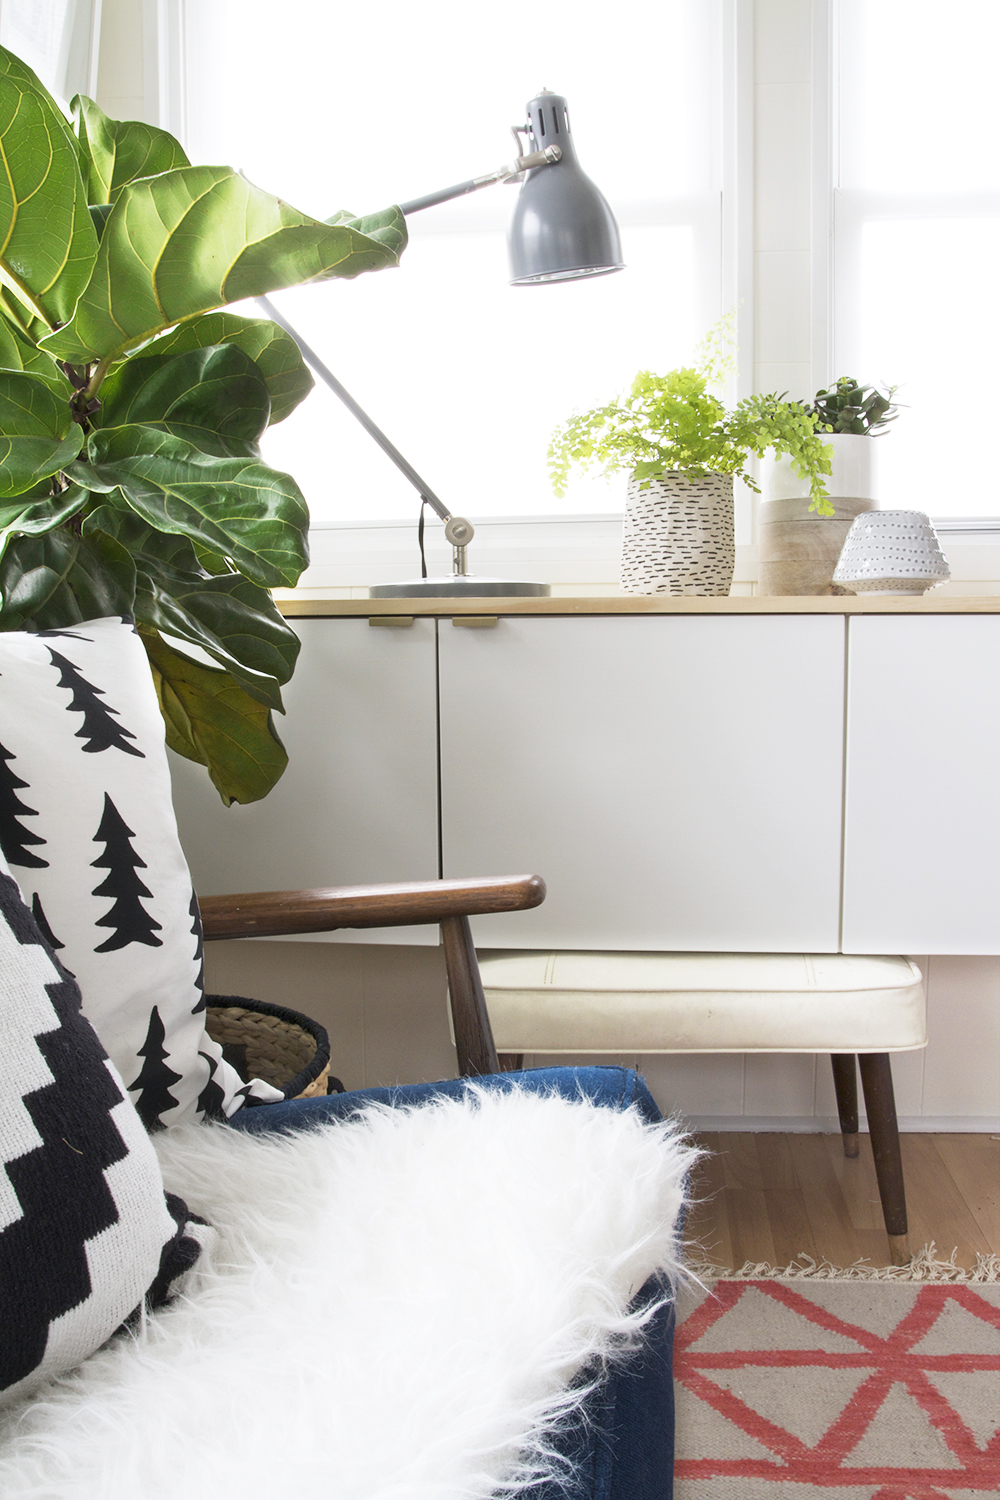 Black and White Accents and Lots of Greenery